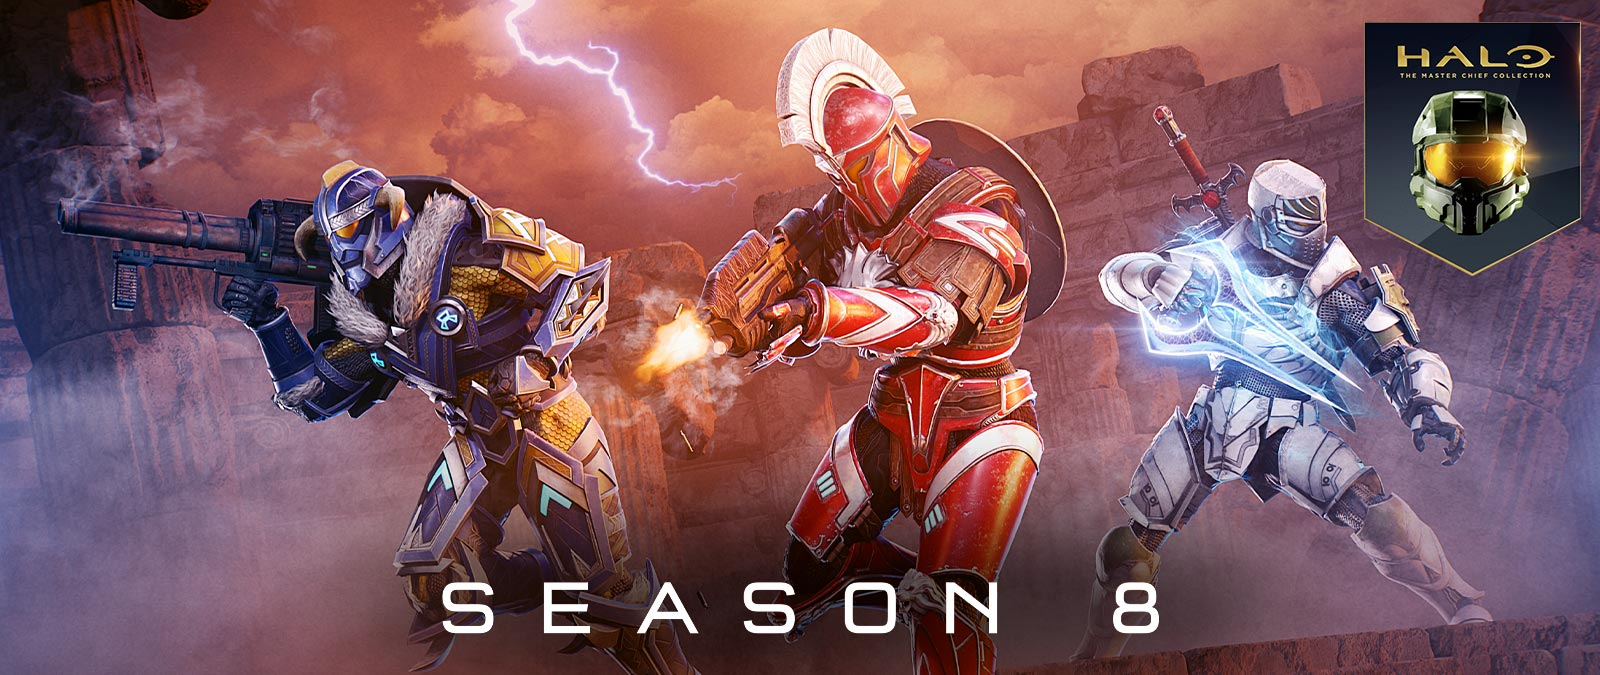 Halo: The Master Chief Collection, Season 8, Multiple Elites pose wearing different armor and holding weapons